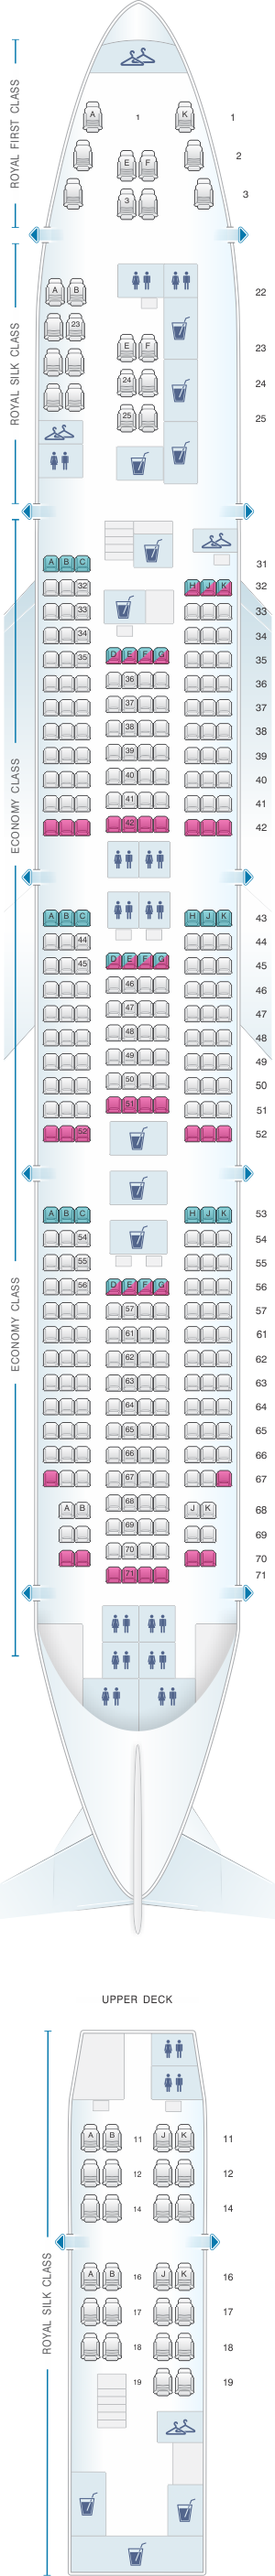 Seat map for Thai Airways International Boeing B747 400 (74R/74N)